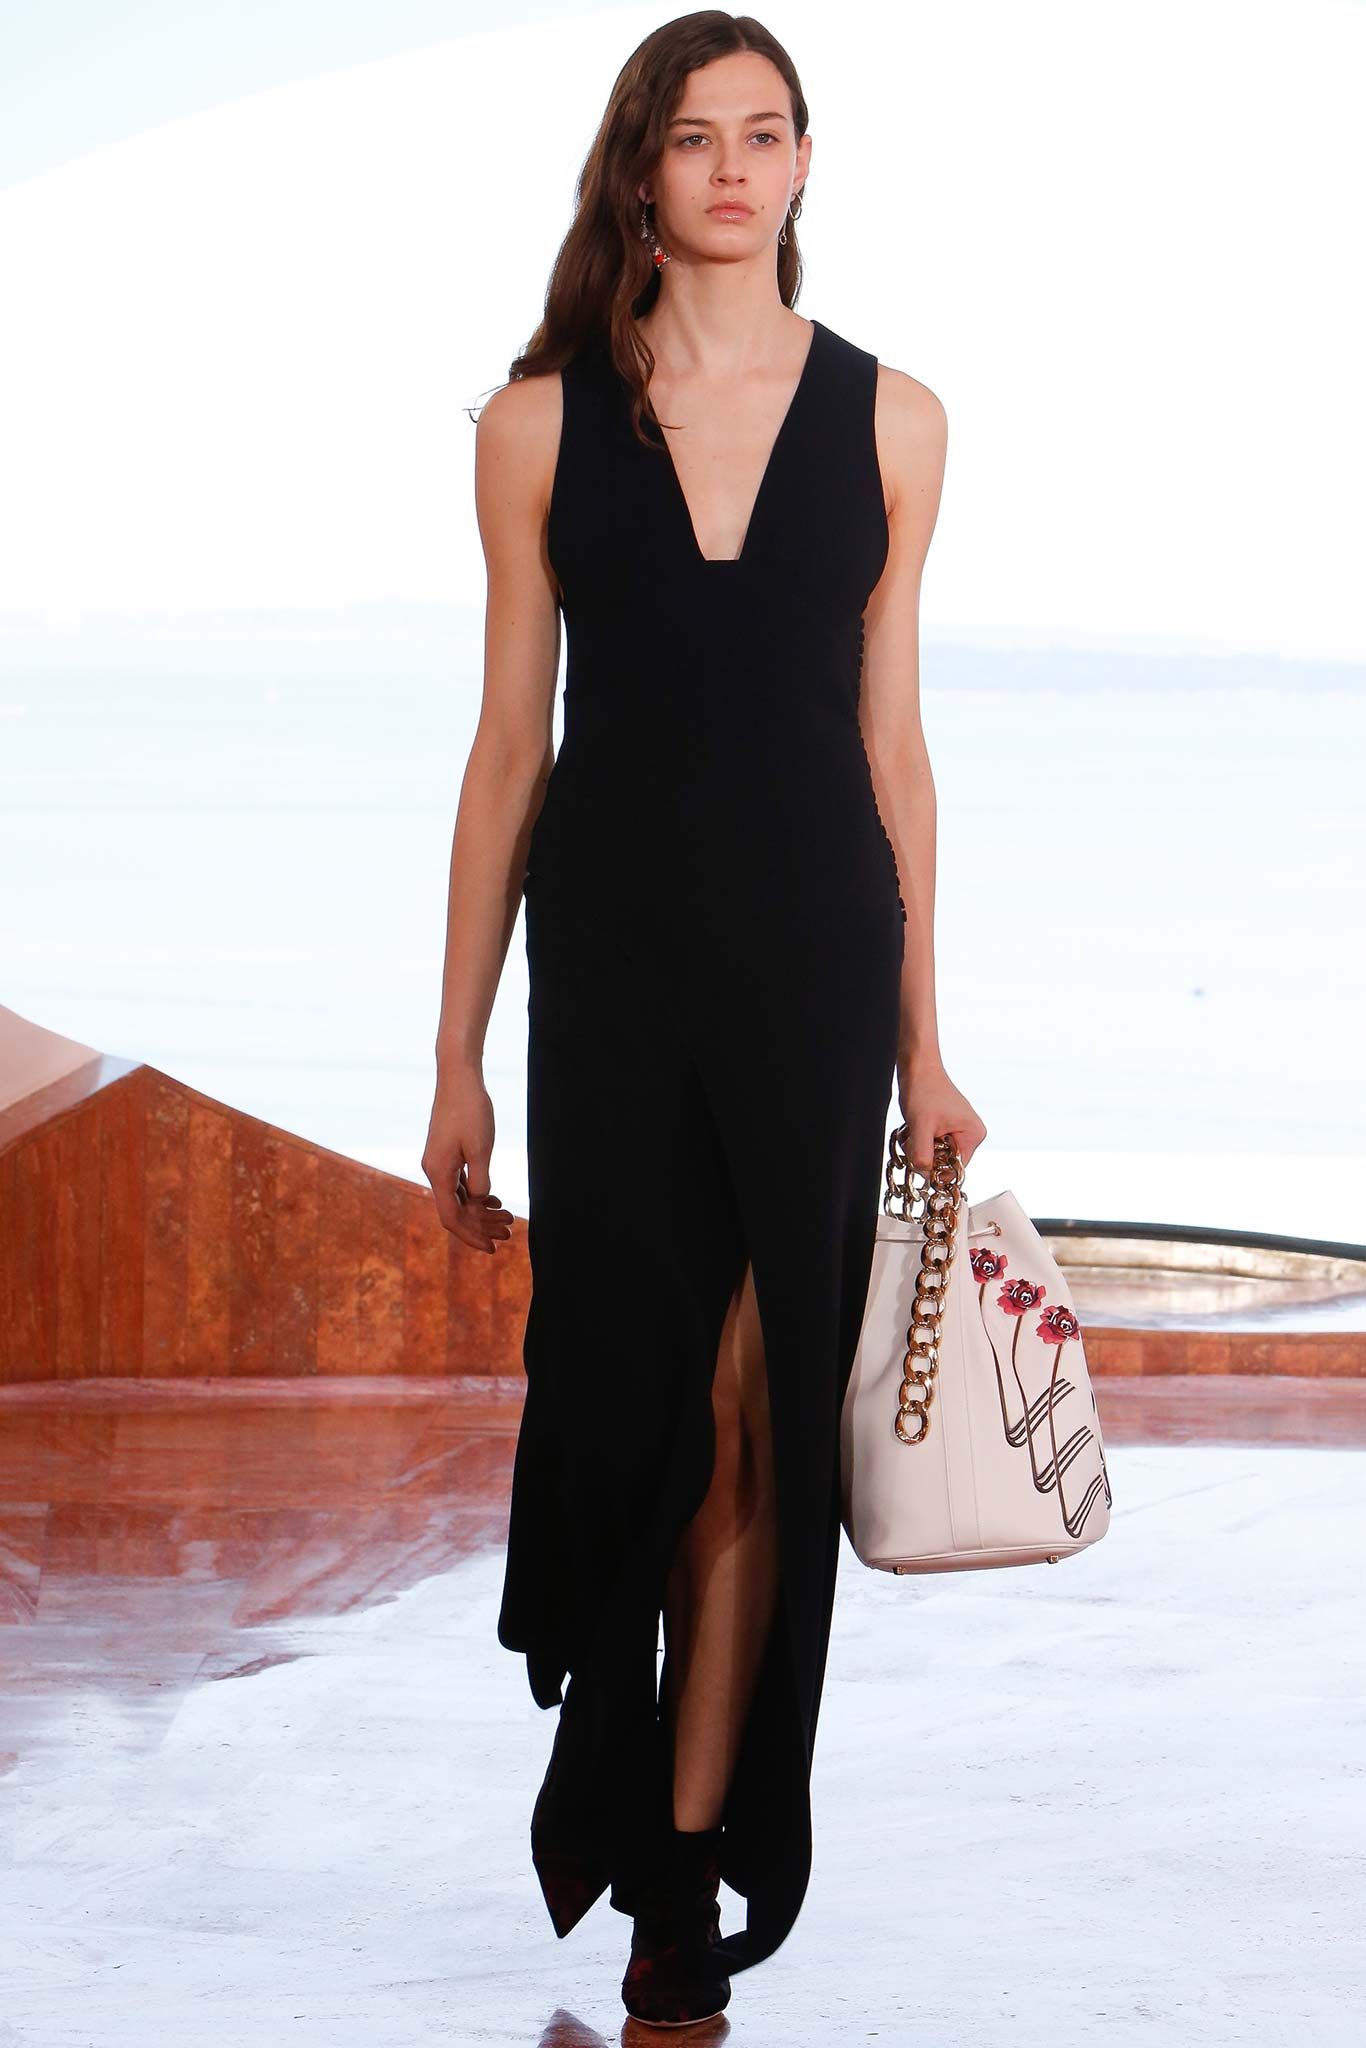 dior_cruise_2016_fashiondiaries_15